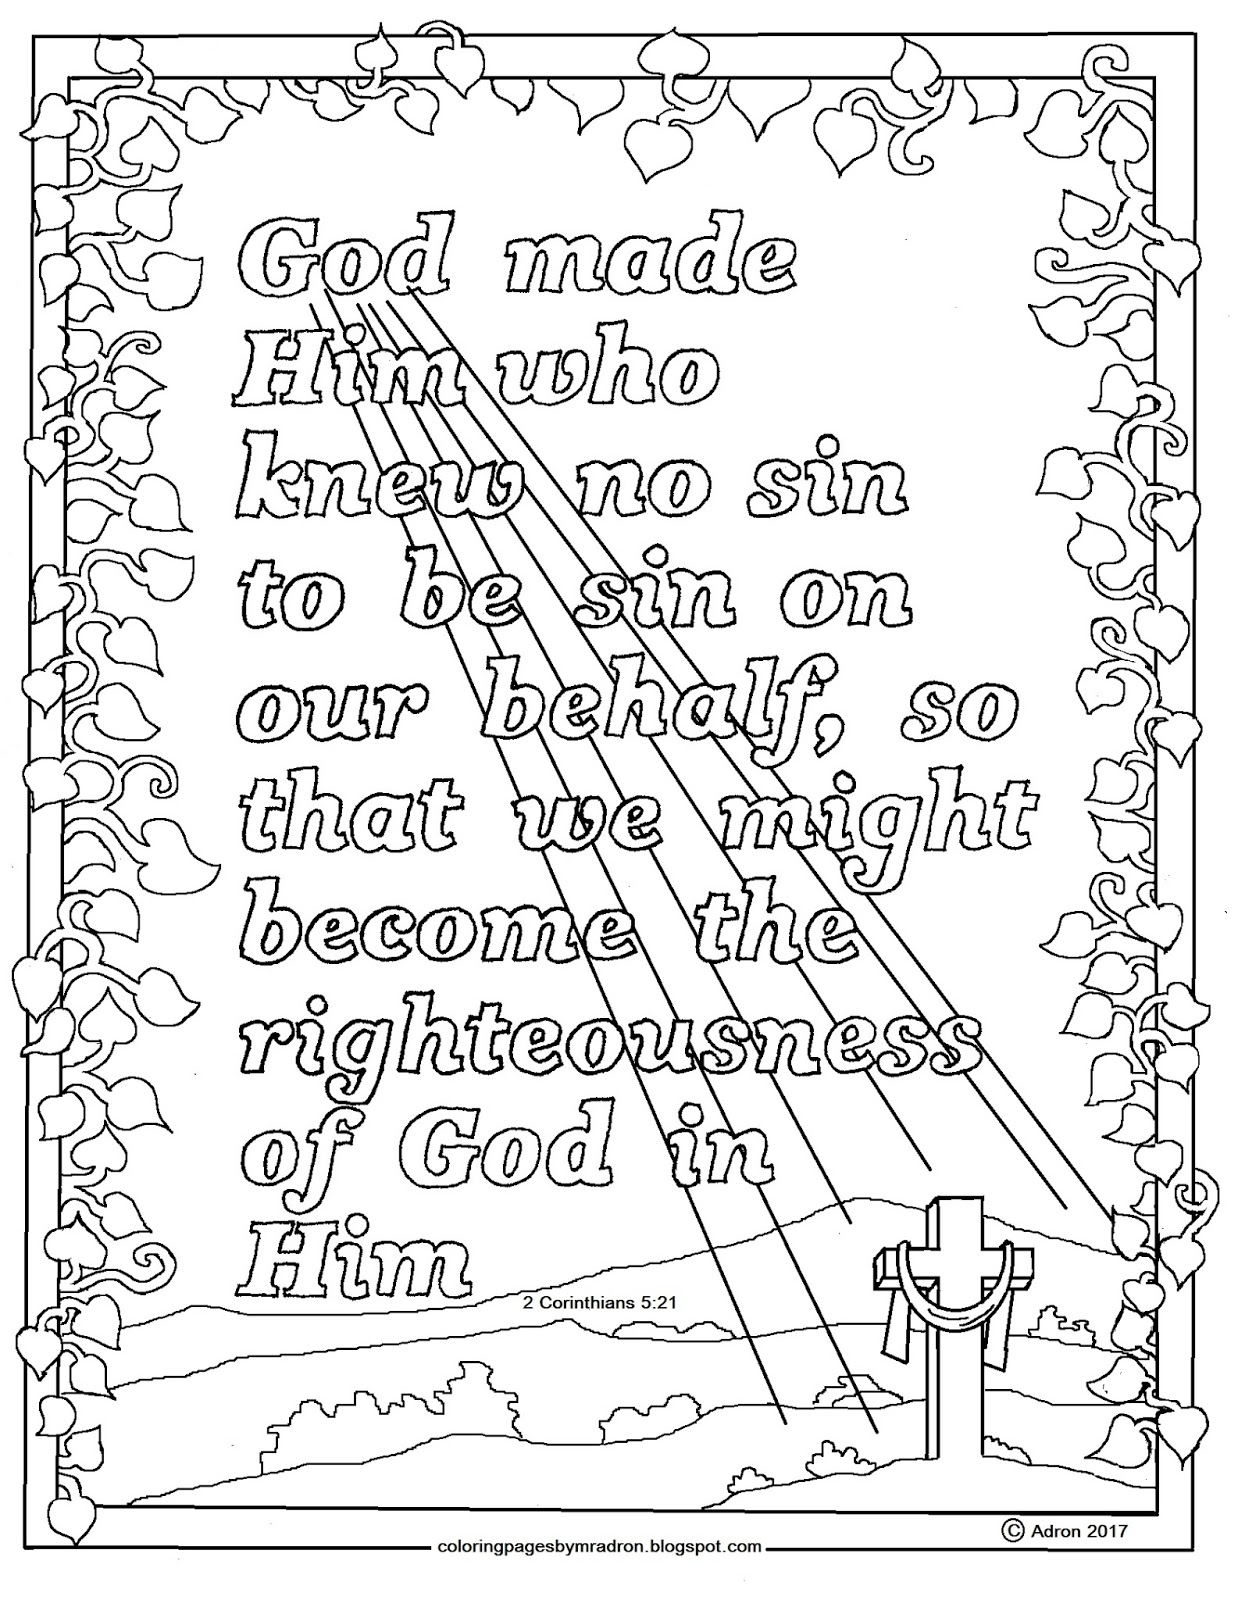 Coloring Pages for Kids by Mr. Adron: 2 Corinthians 5:21